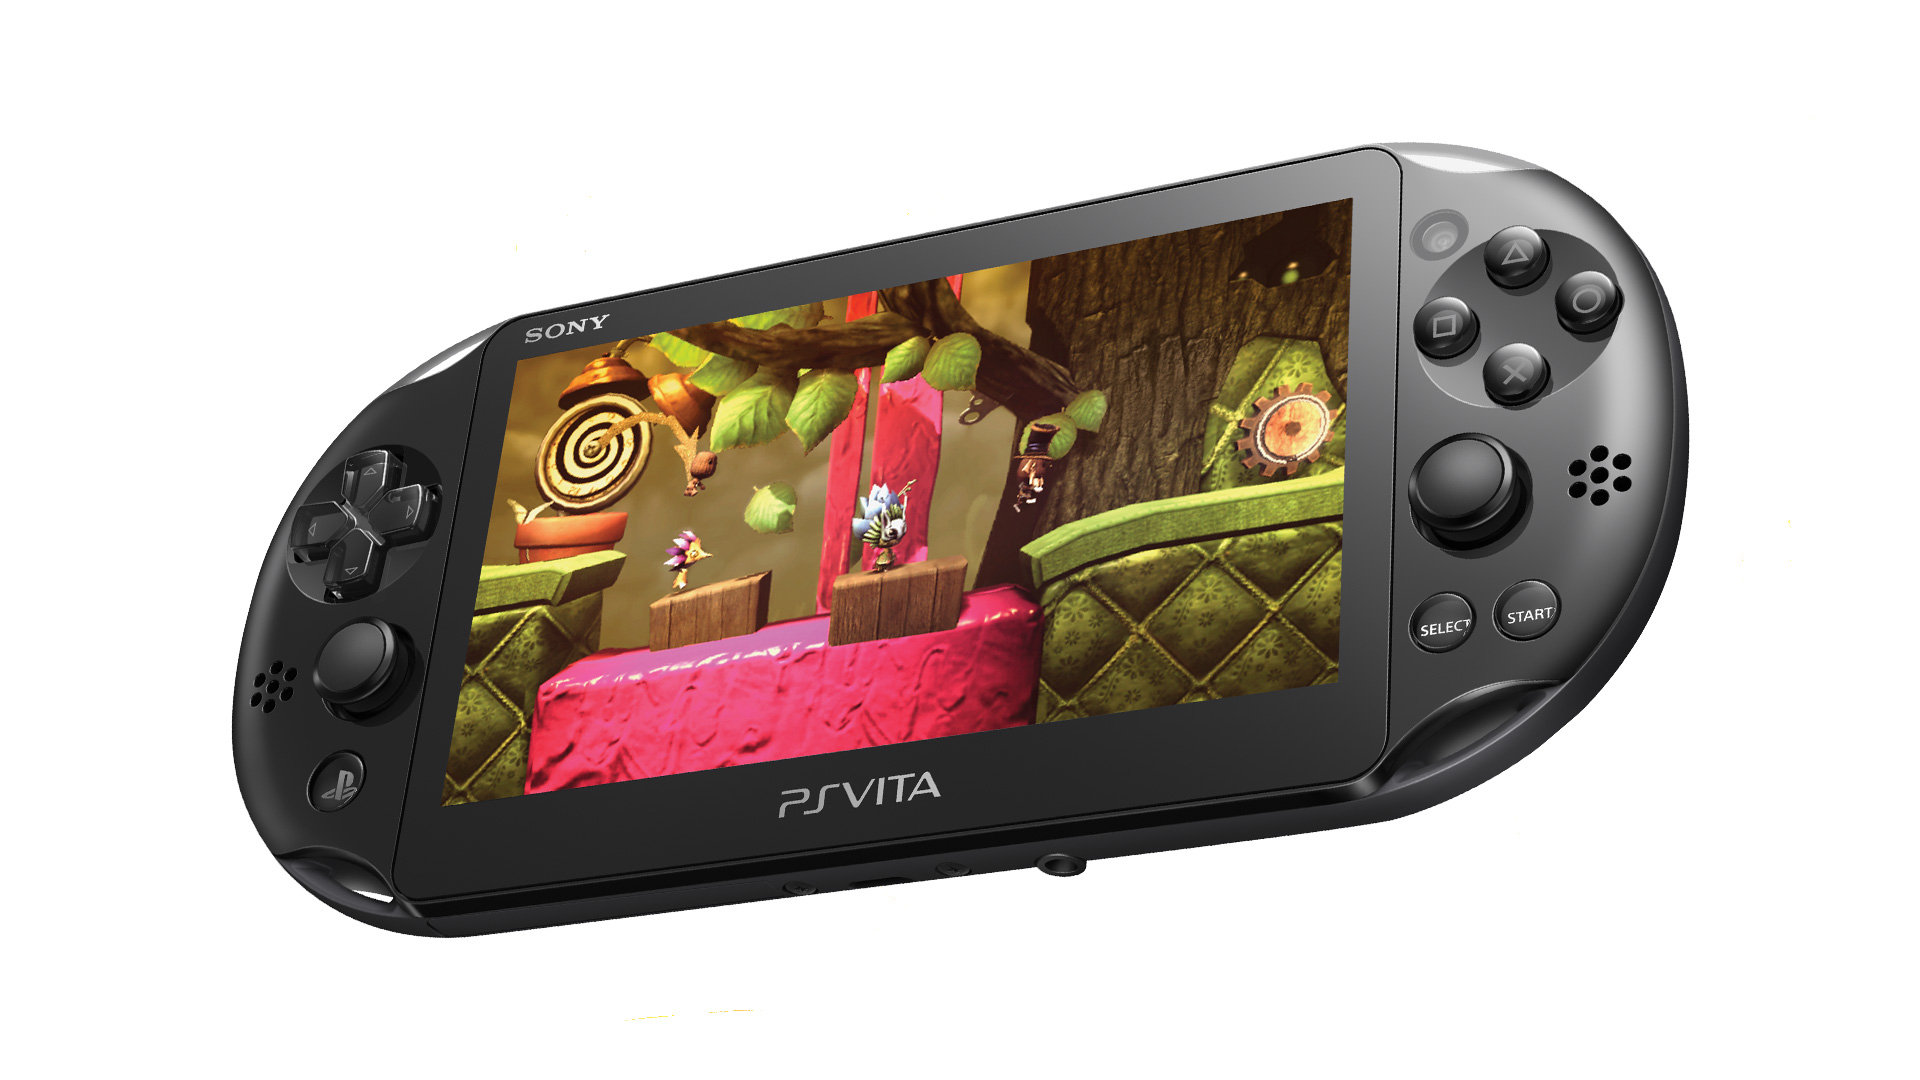 Production of Playstation Vita To End In Japan